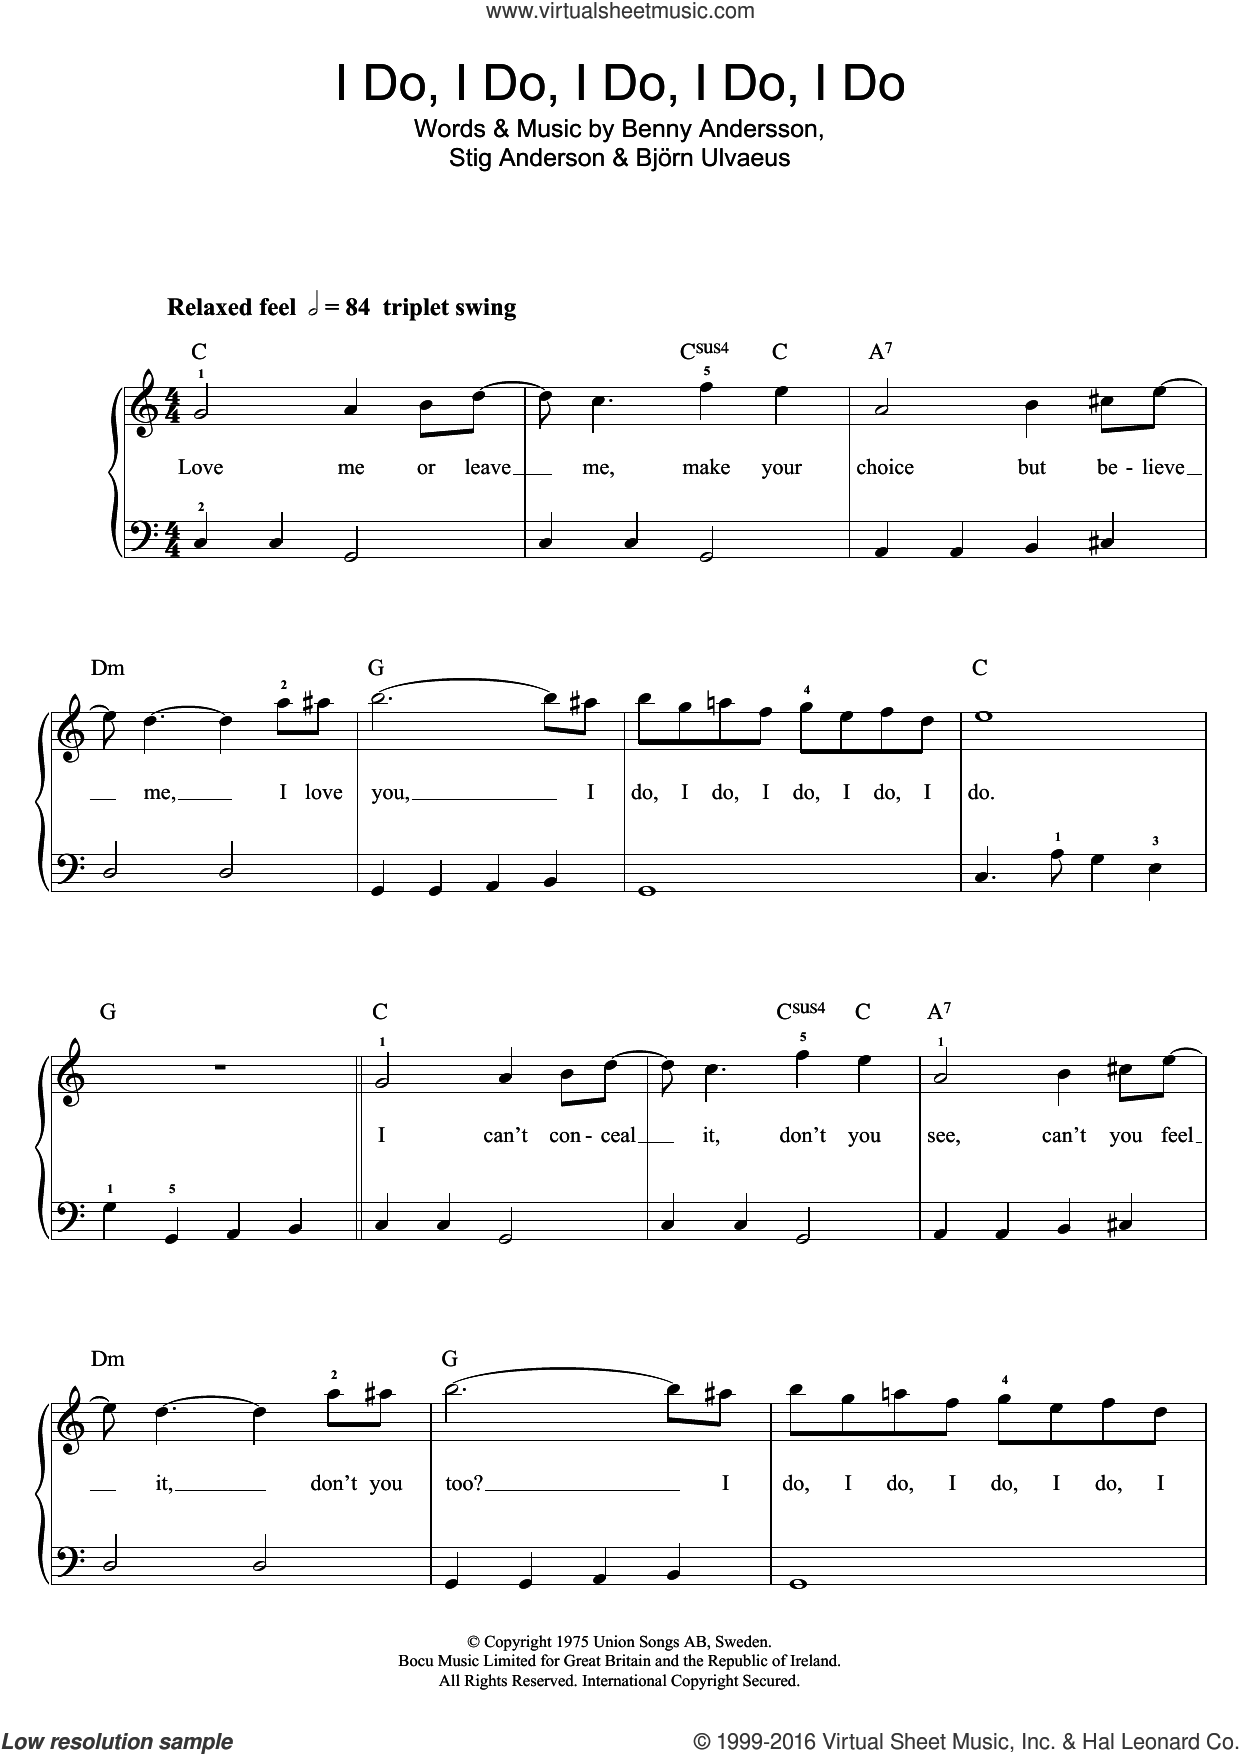 I Do, I Do, I Do, I Do, I Do sheet music for piano solo (beginners) by ABBA, Benny Andersson, Bjorn Ulvaeus and Stig Anderson. Score Image Preview.